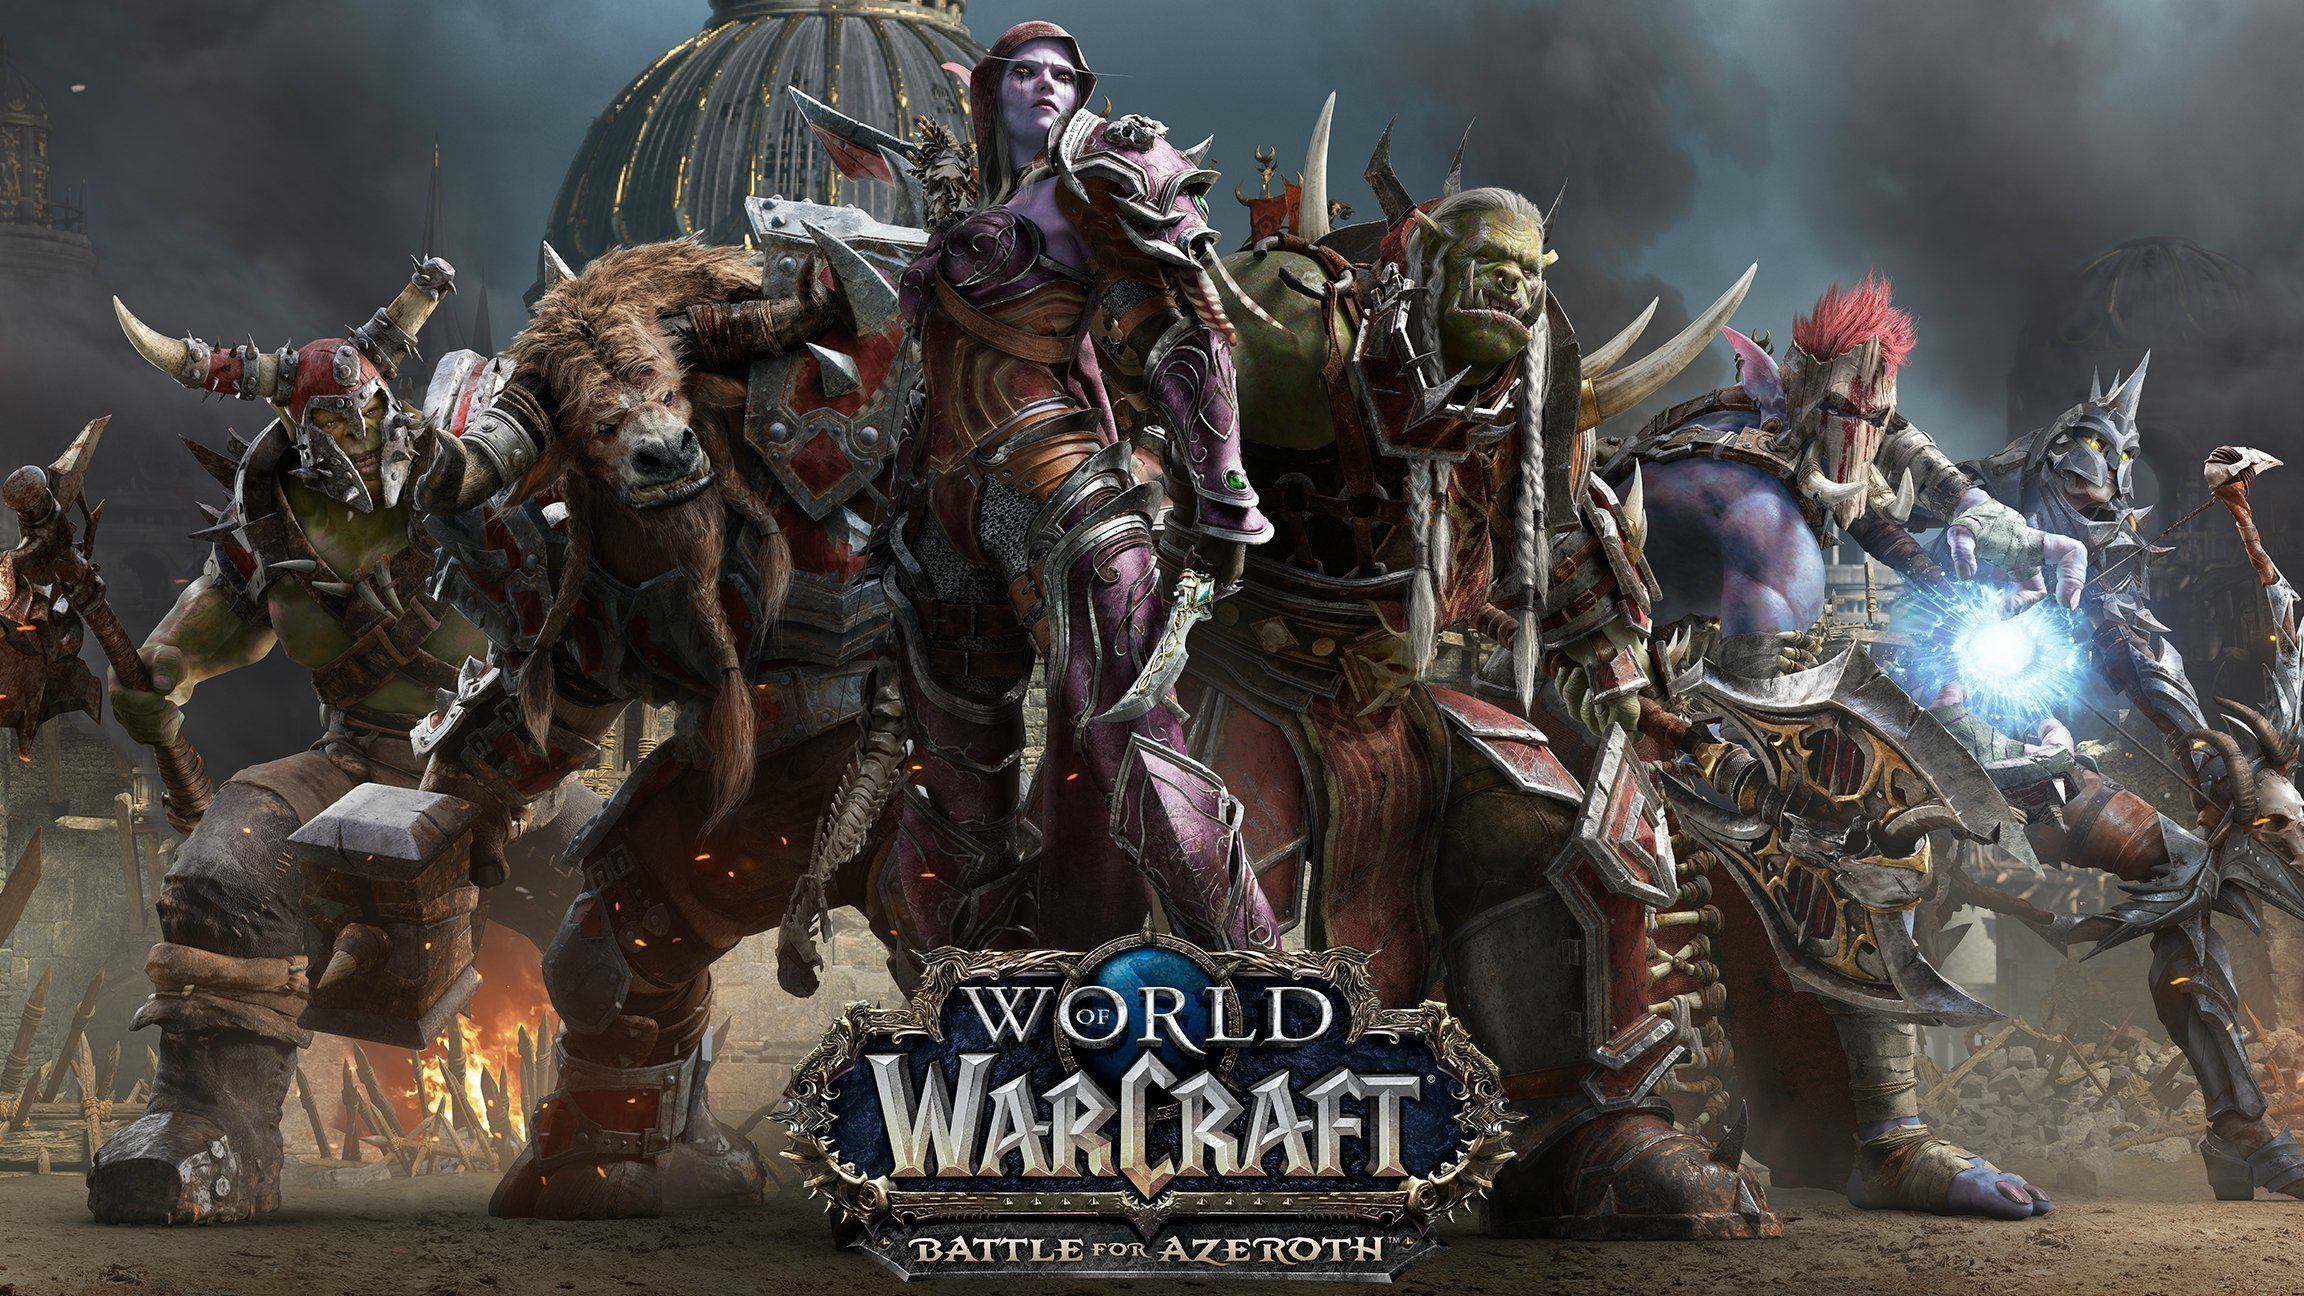 Merlot reccomend World of warcraft console